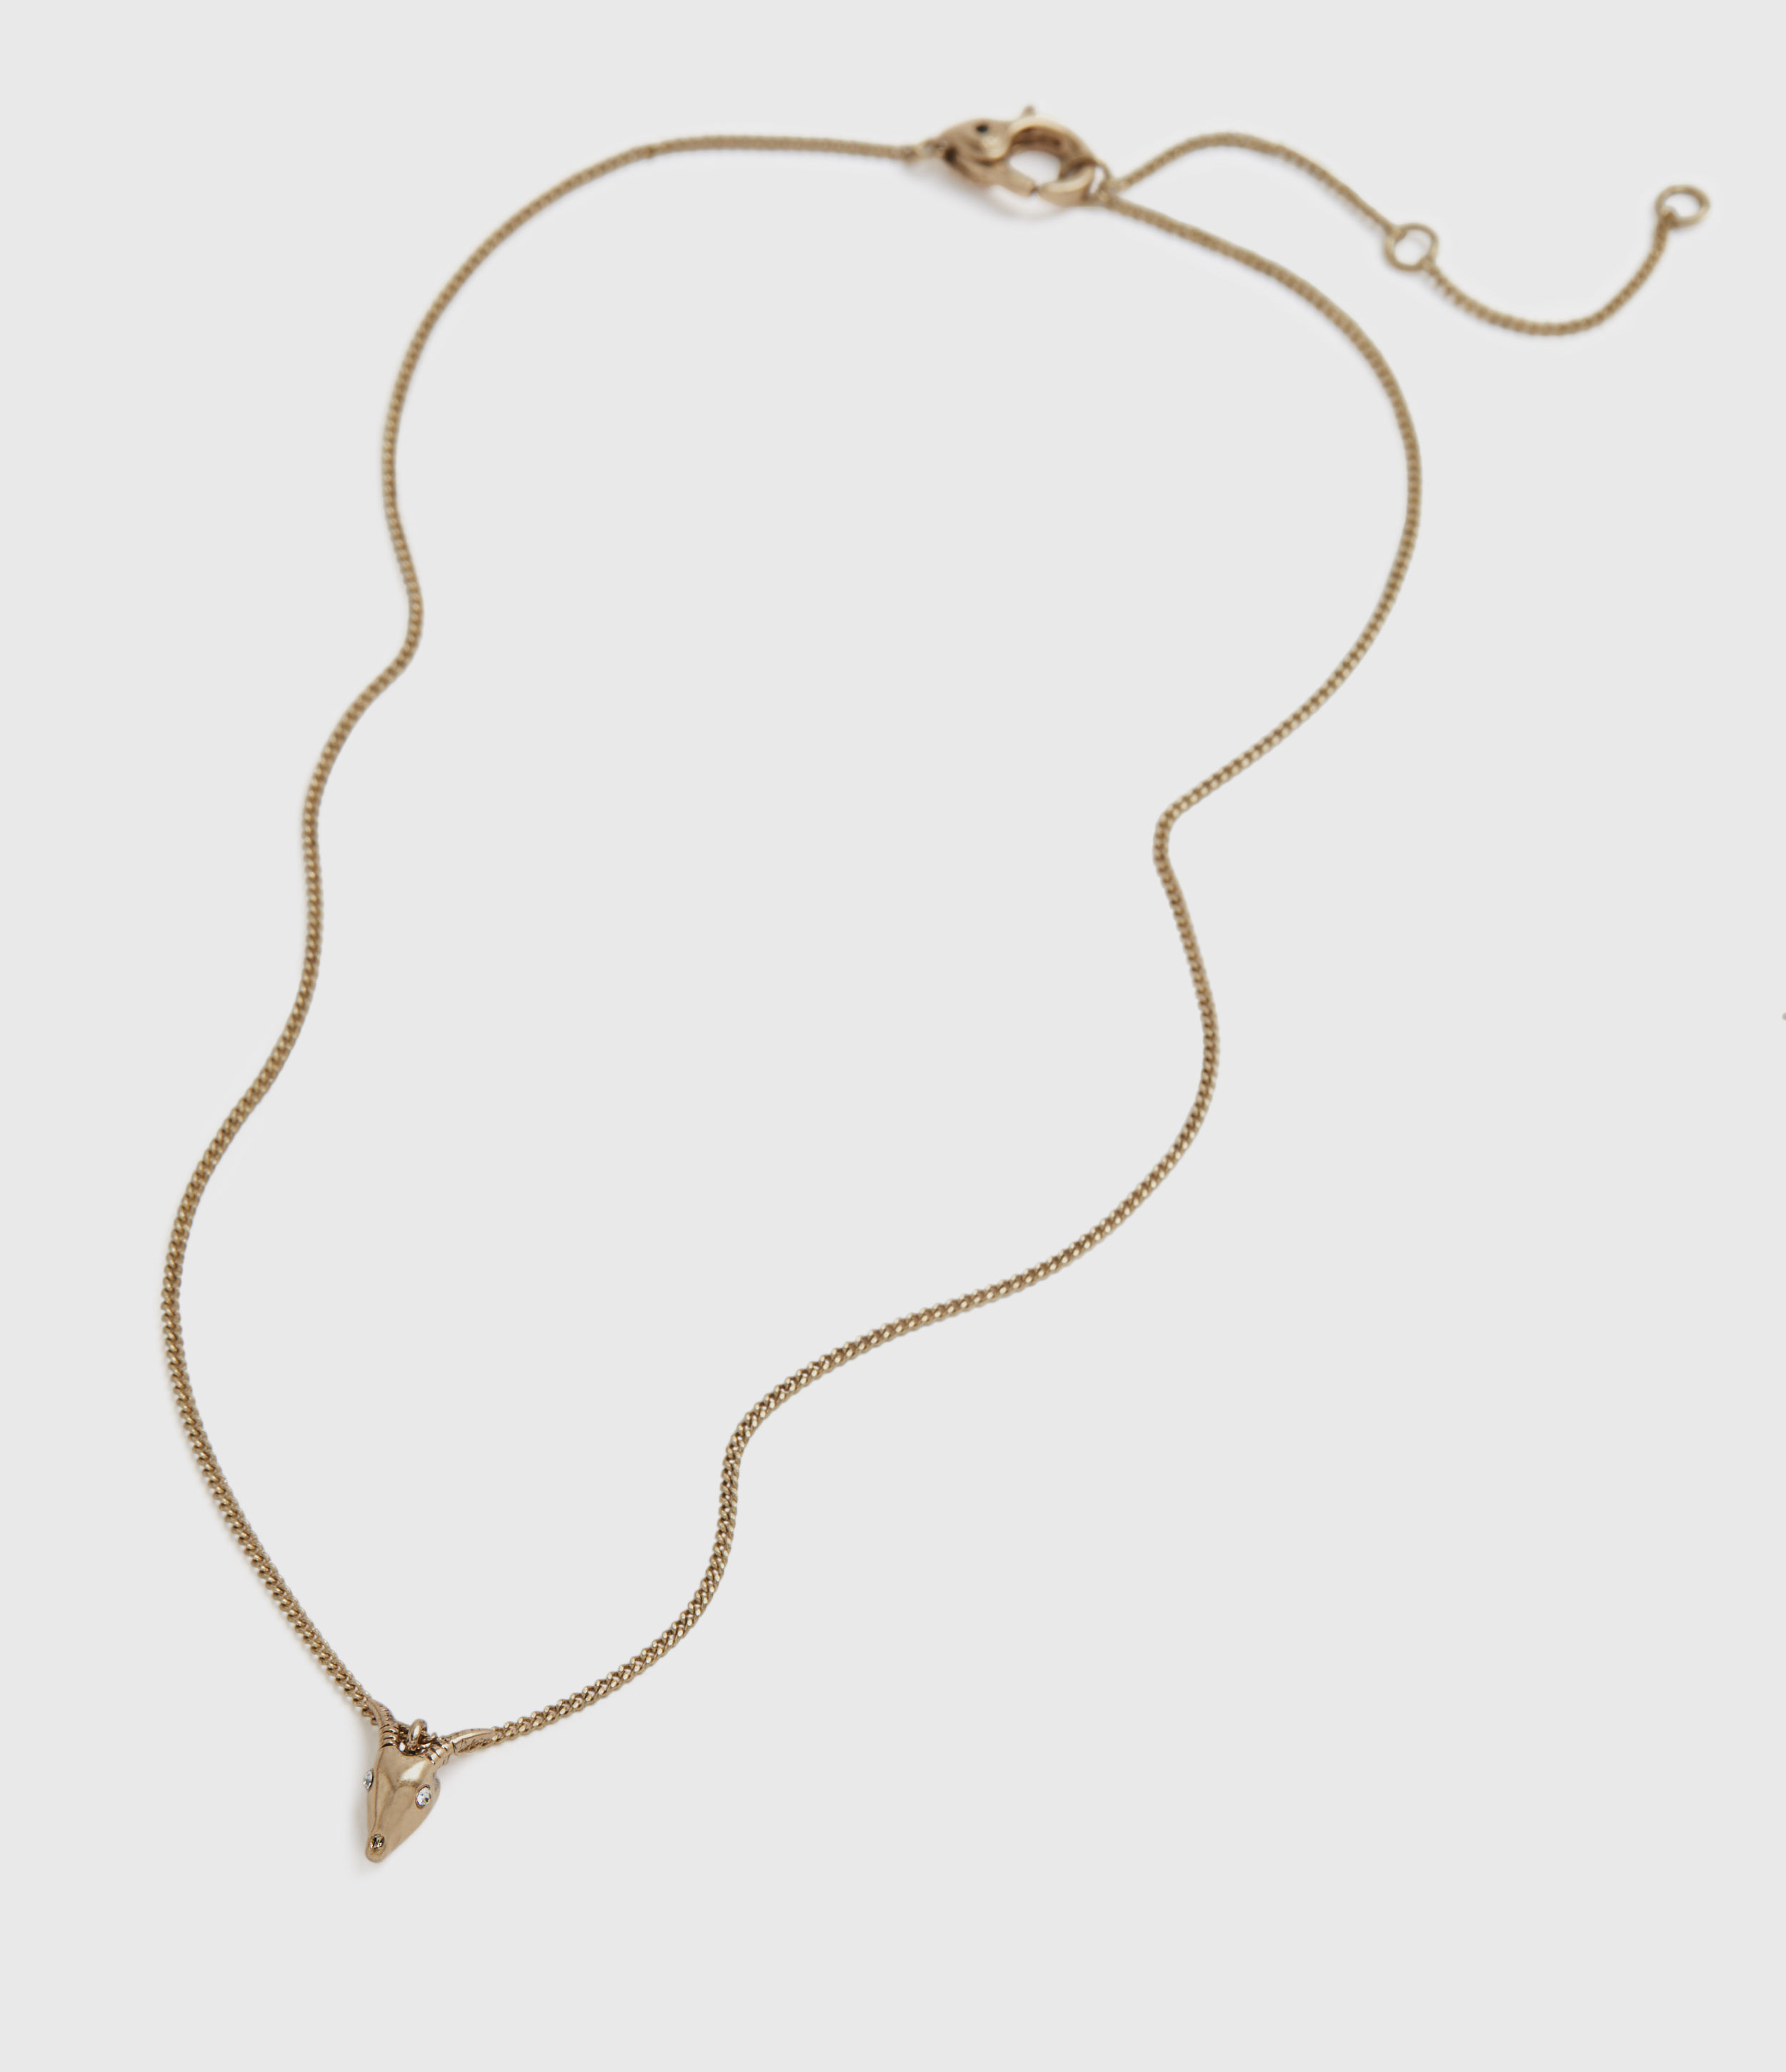 AllSaints Women's Brass Mini Ram Necklace, Gold-Tone